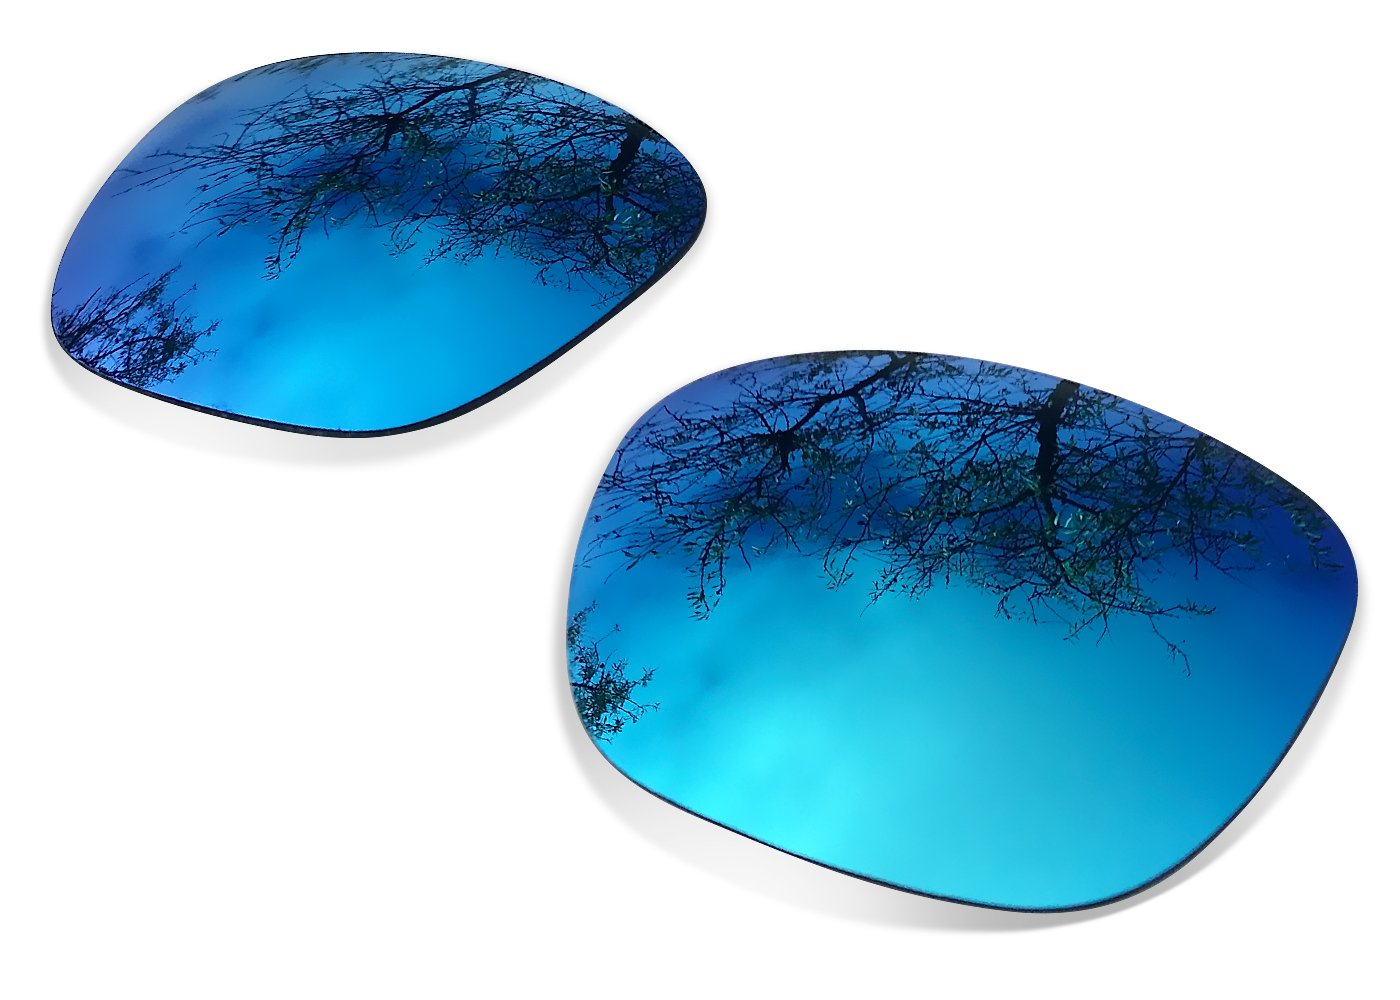 f8e8a640d6 SURe Polarized Ice Blue Replacement Lenses for Oakley Garage Rock  Sunglasses  Amazon.co.uk  Sports   Outdoors